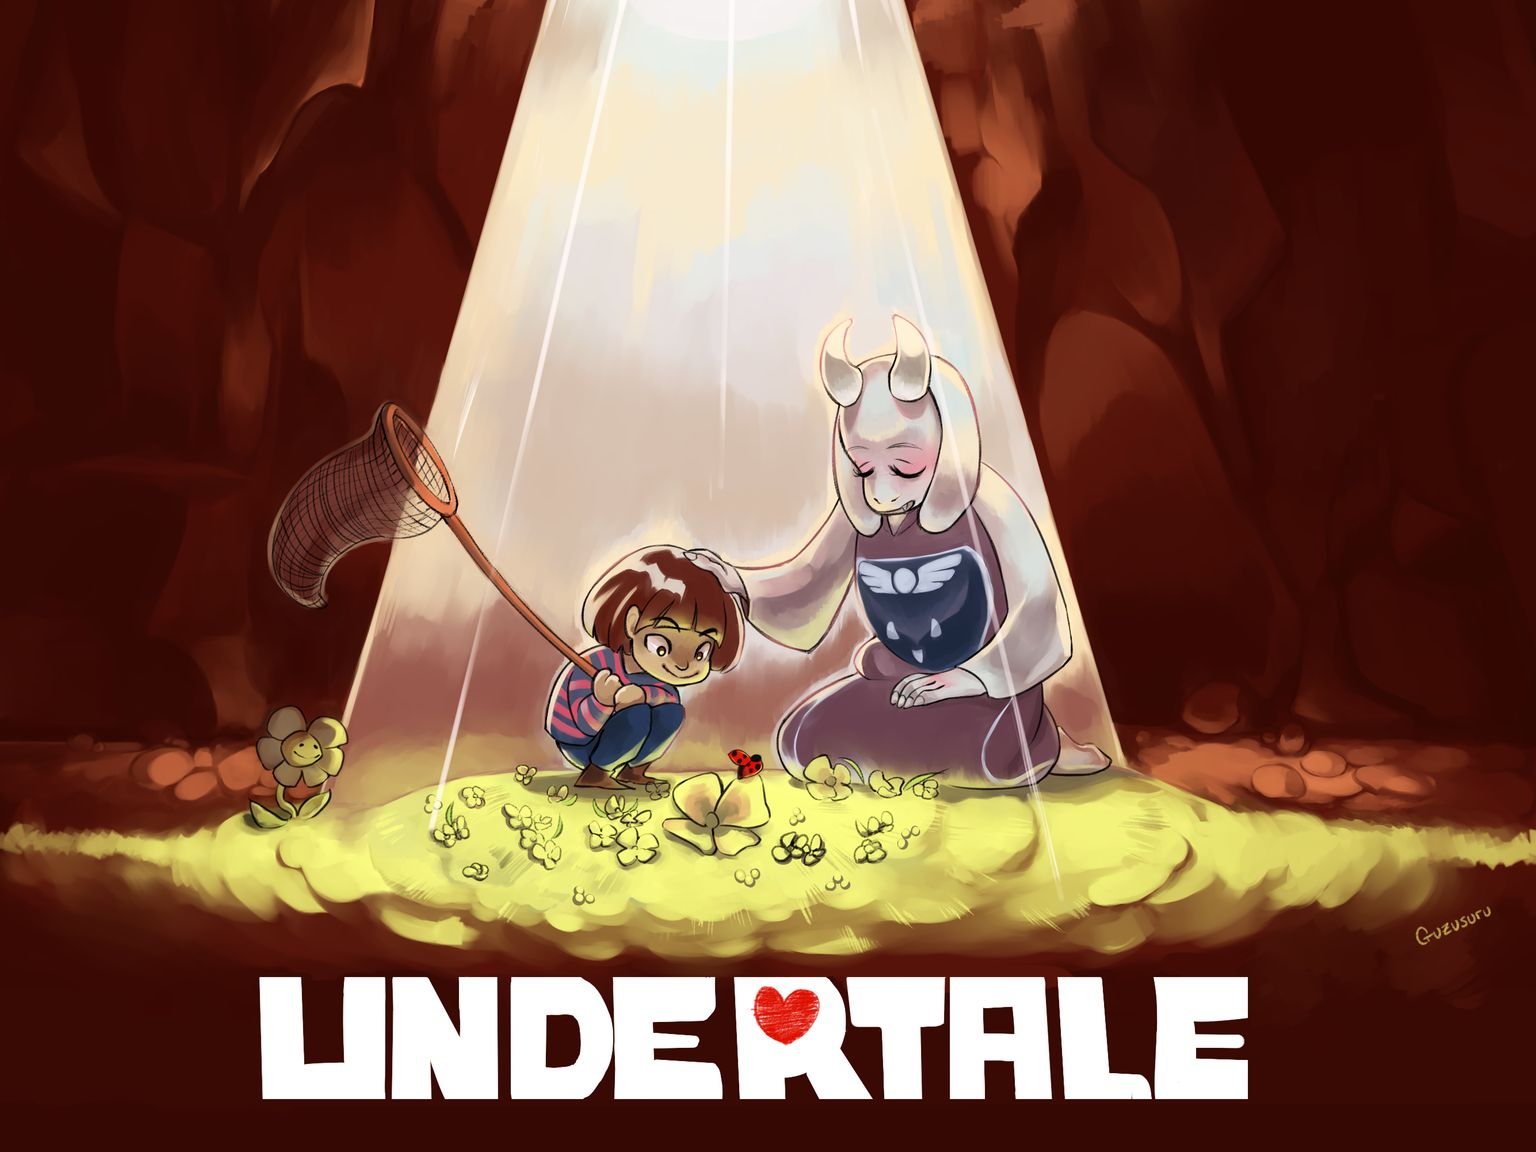 Undertale review – pacifists have more fun